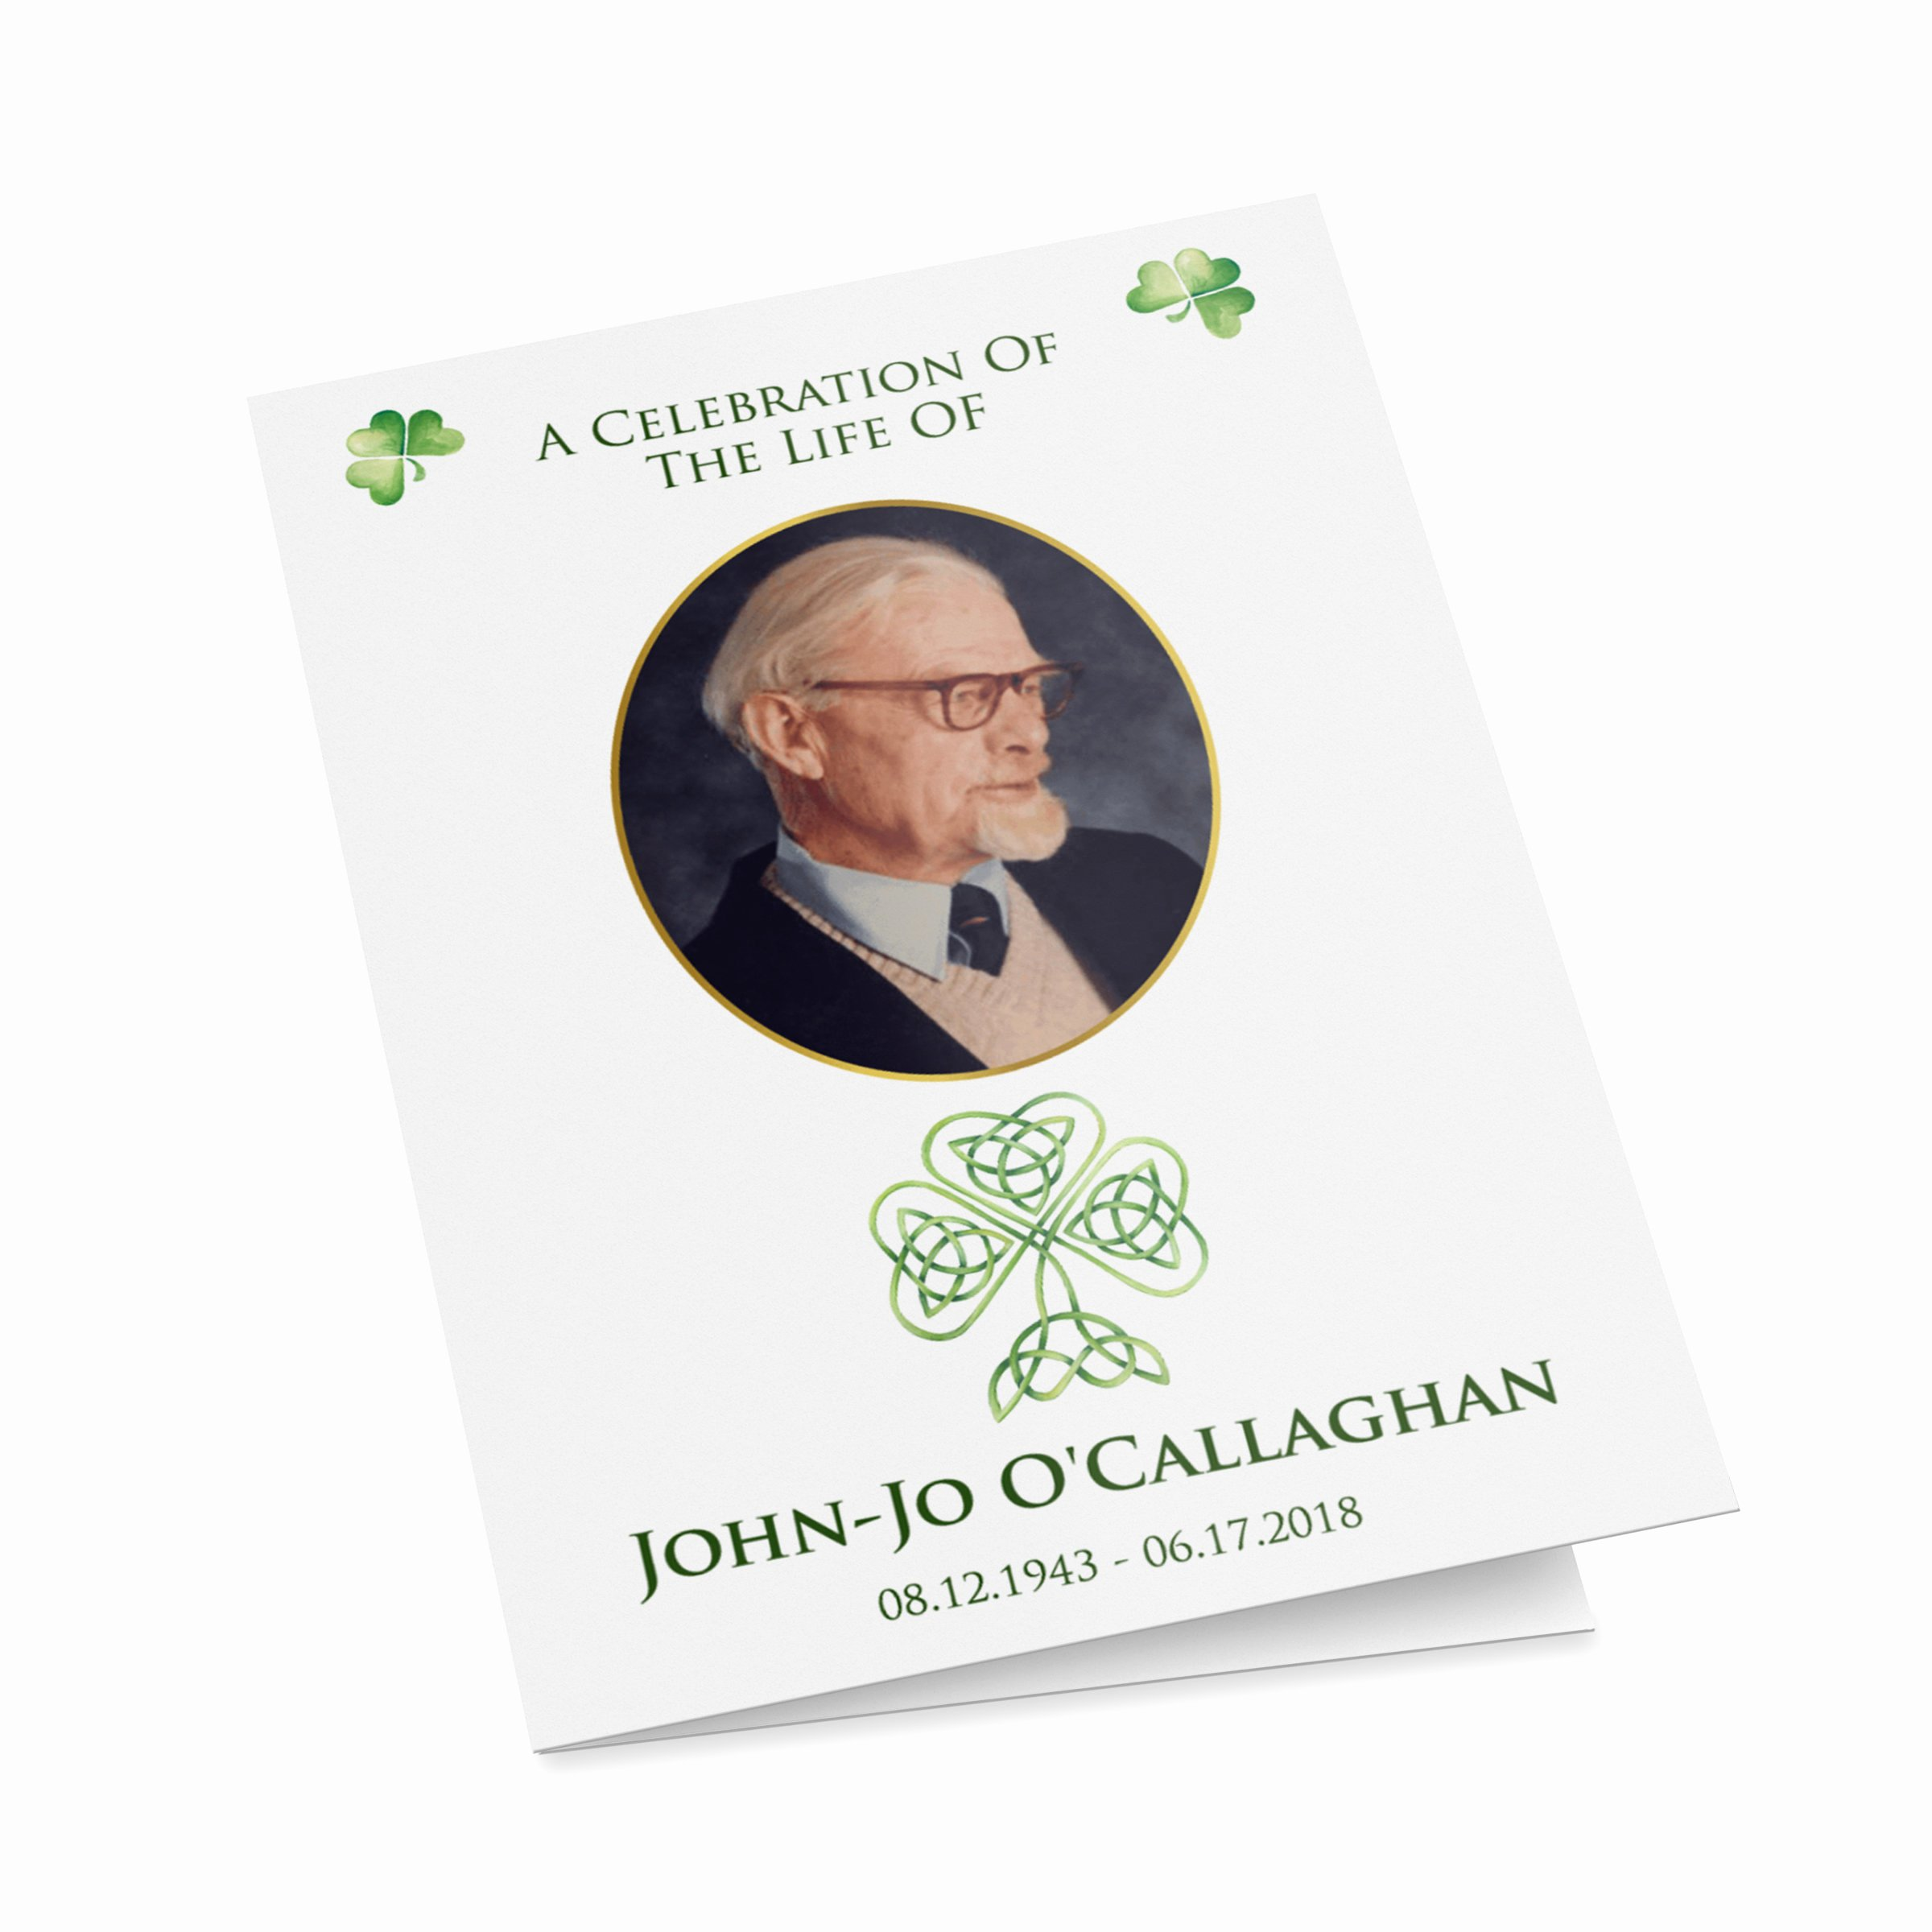 Funeral Mass Program Template Luxury Irish Catholic Funeral Mass Program Template with Shamrocks